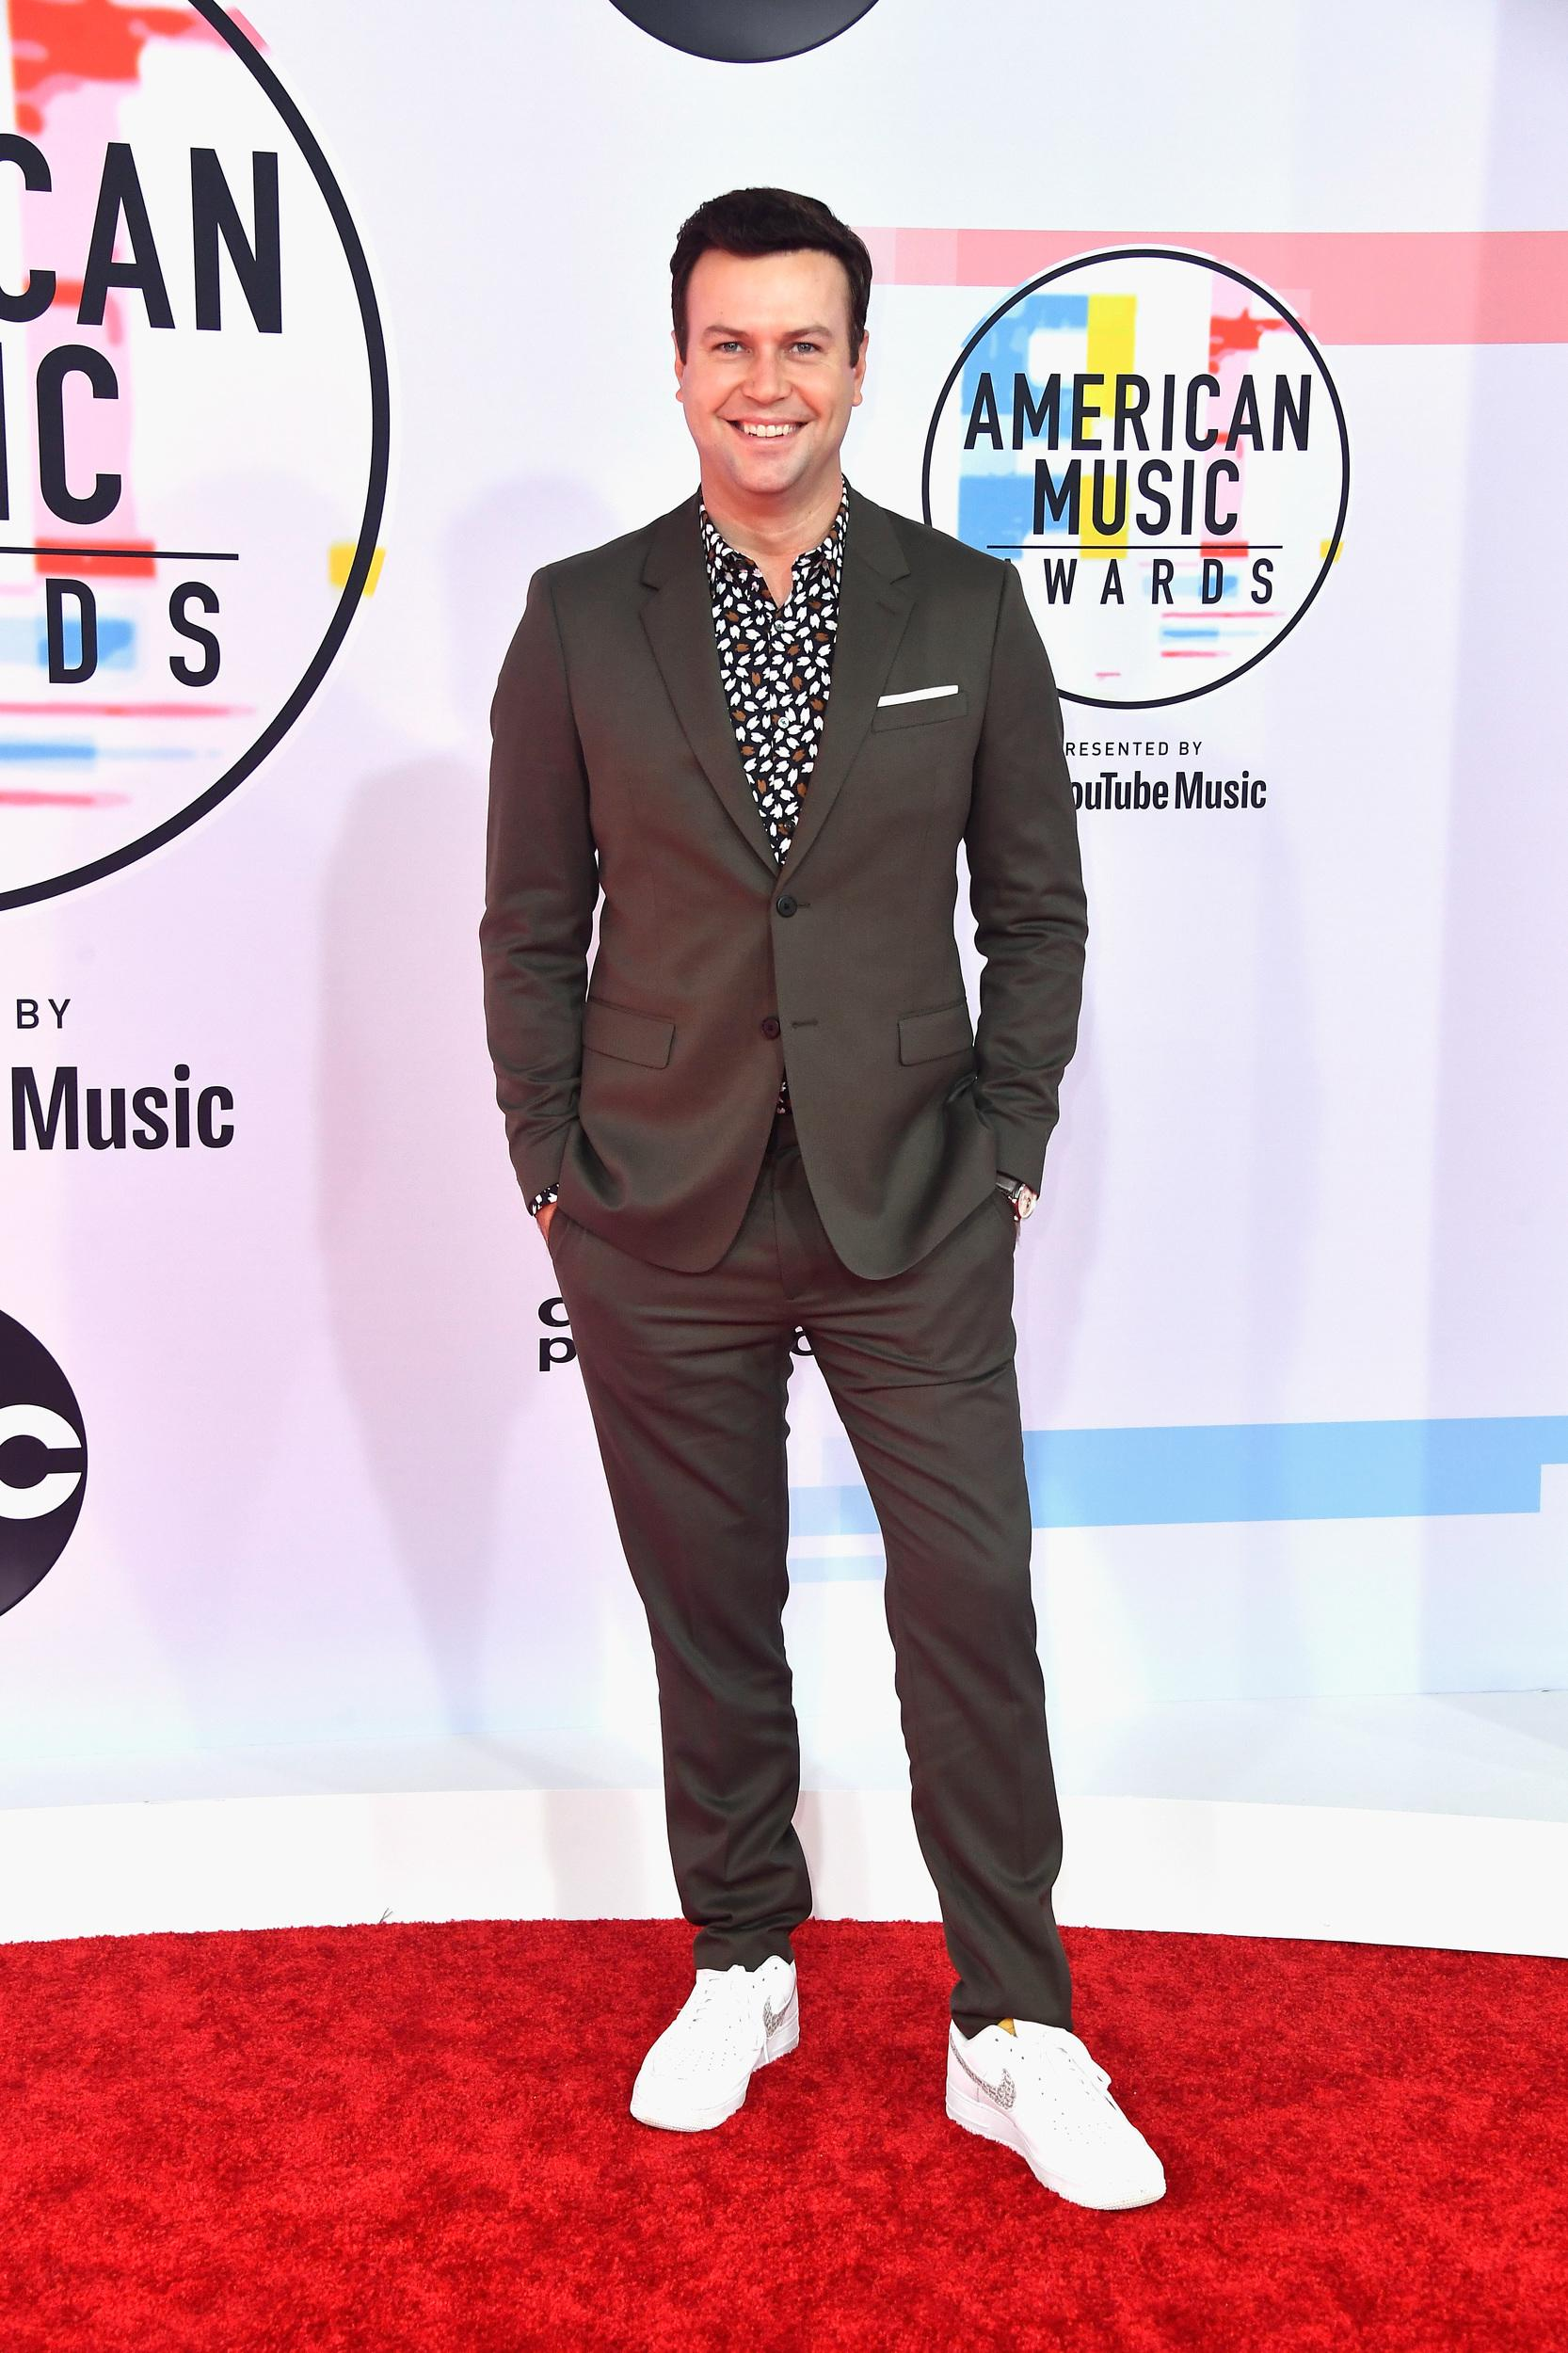 LOS ANGELES, CA - OCTOBER 09:  Taran Killam attends the 2018 American Music Awards at Microsoft Theater on October 9, 2018 in Los Angeles, California.  (Photo by Frazer Harrison/Getty Images)